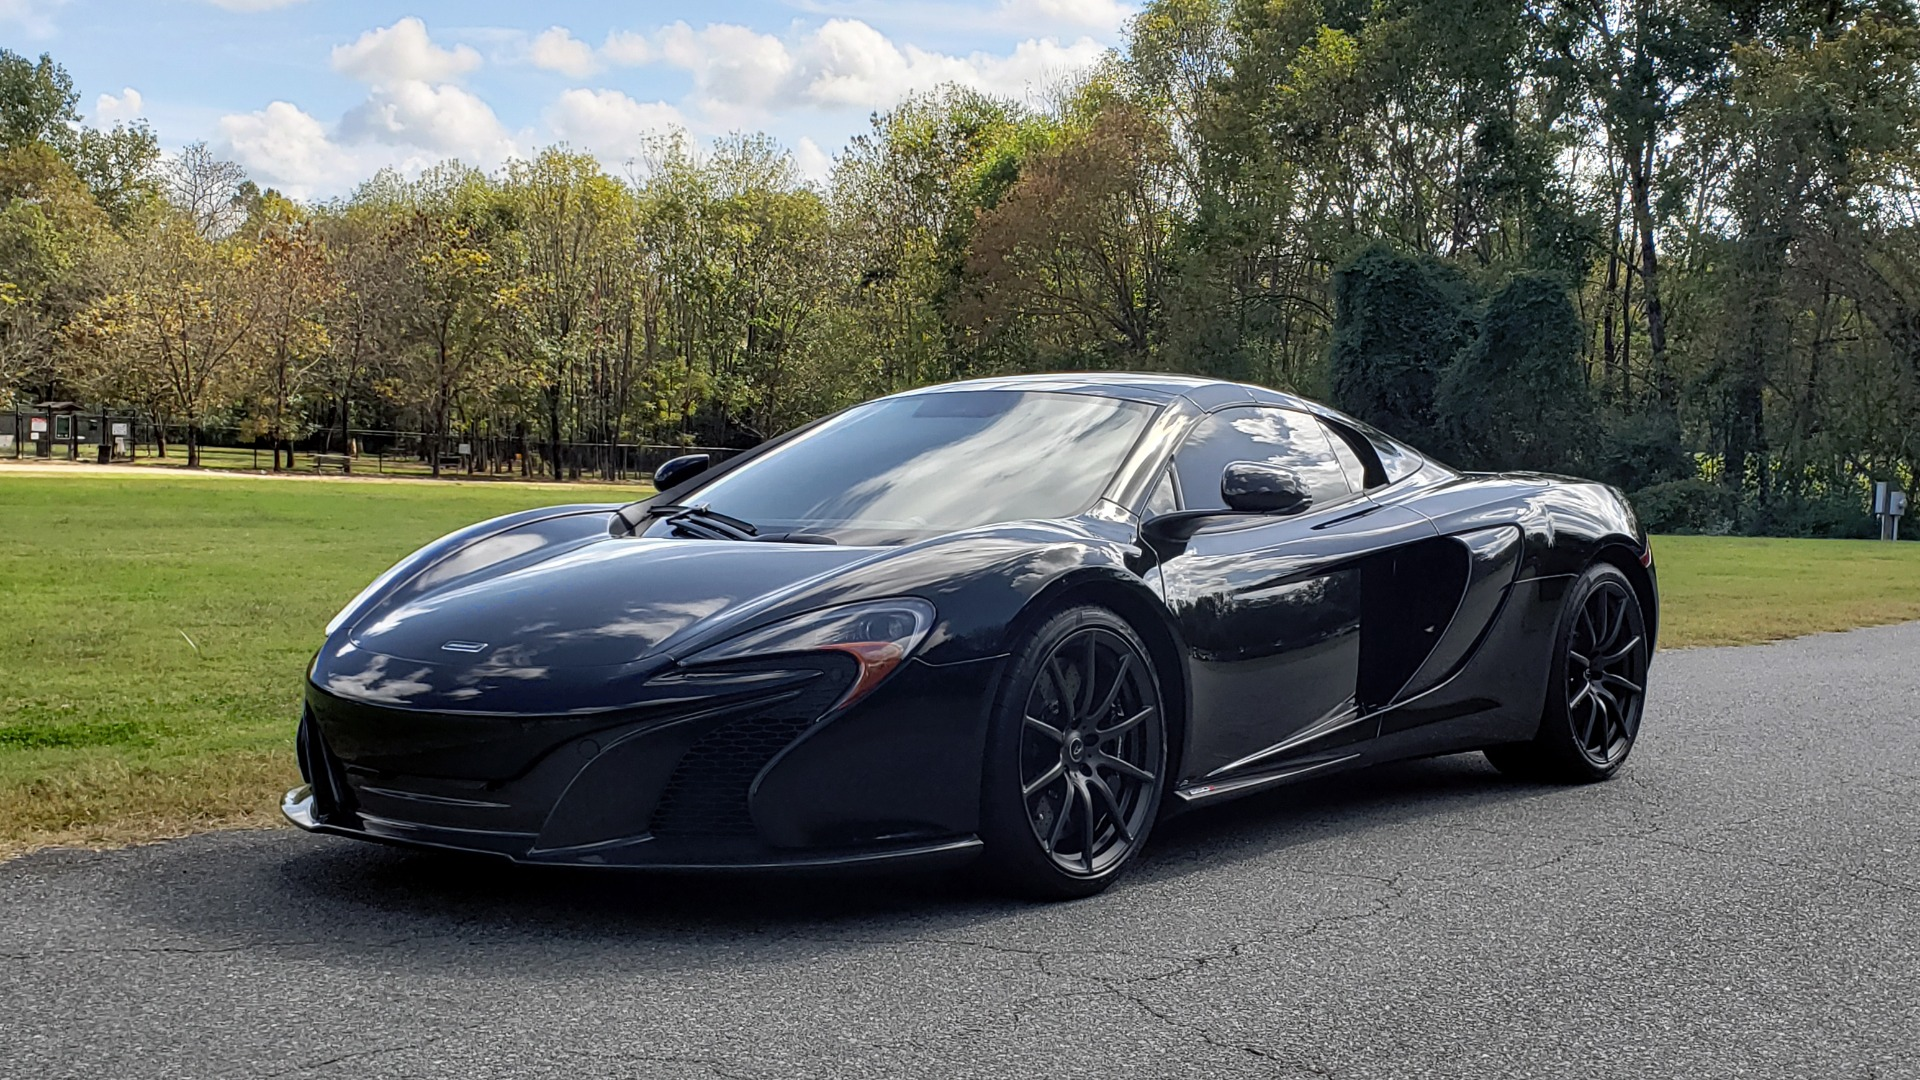 Used 2016 McLaren 650S SPIDER / 641HP / PARK SENSORS / LOW MILES / 1-OWNER for sale Sold at Formula Imports in Charlotte NC 28227 5